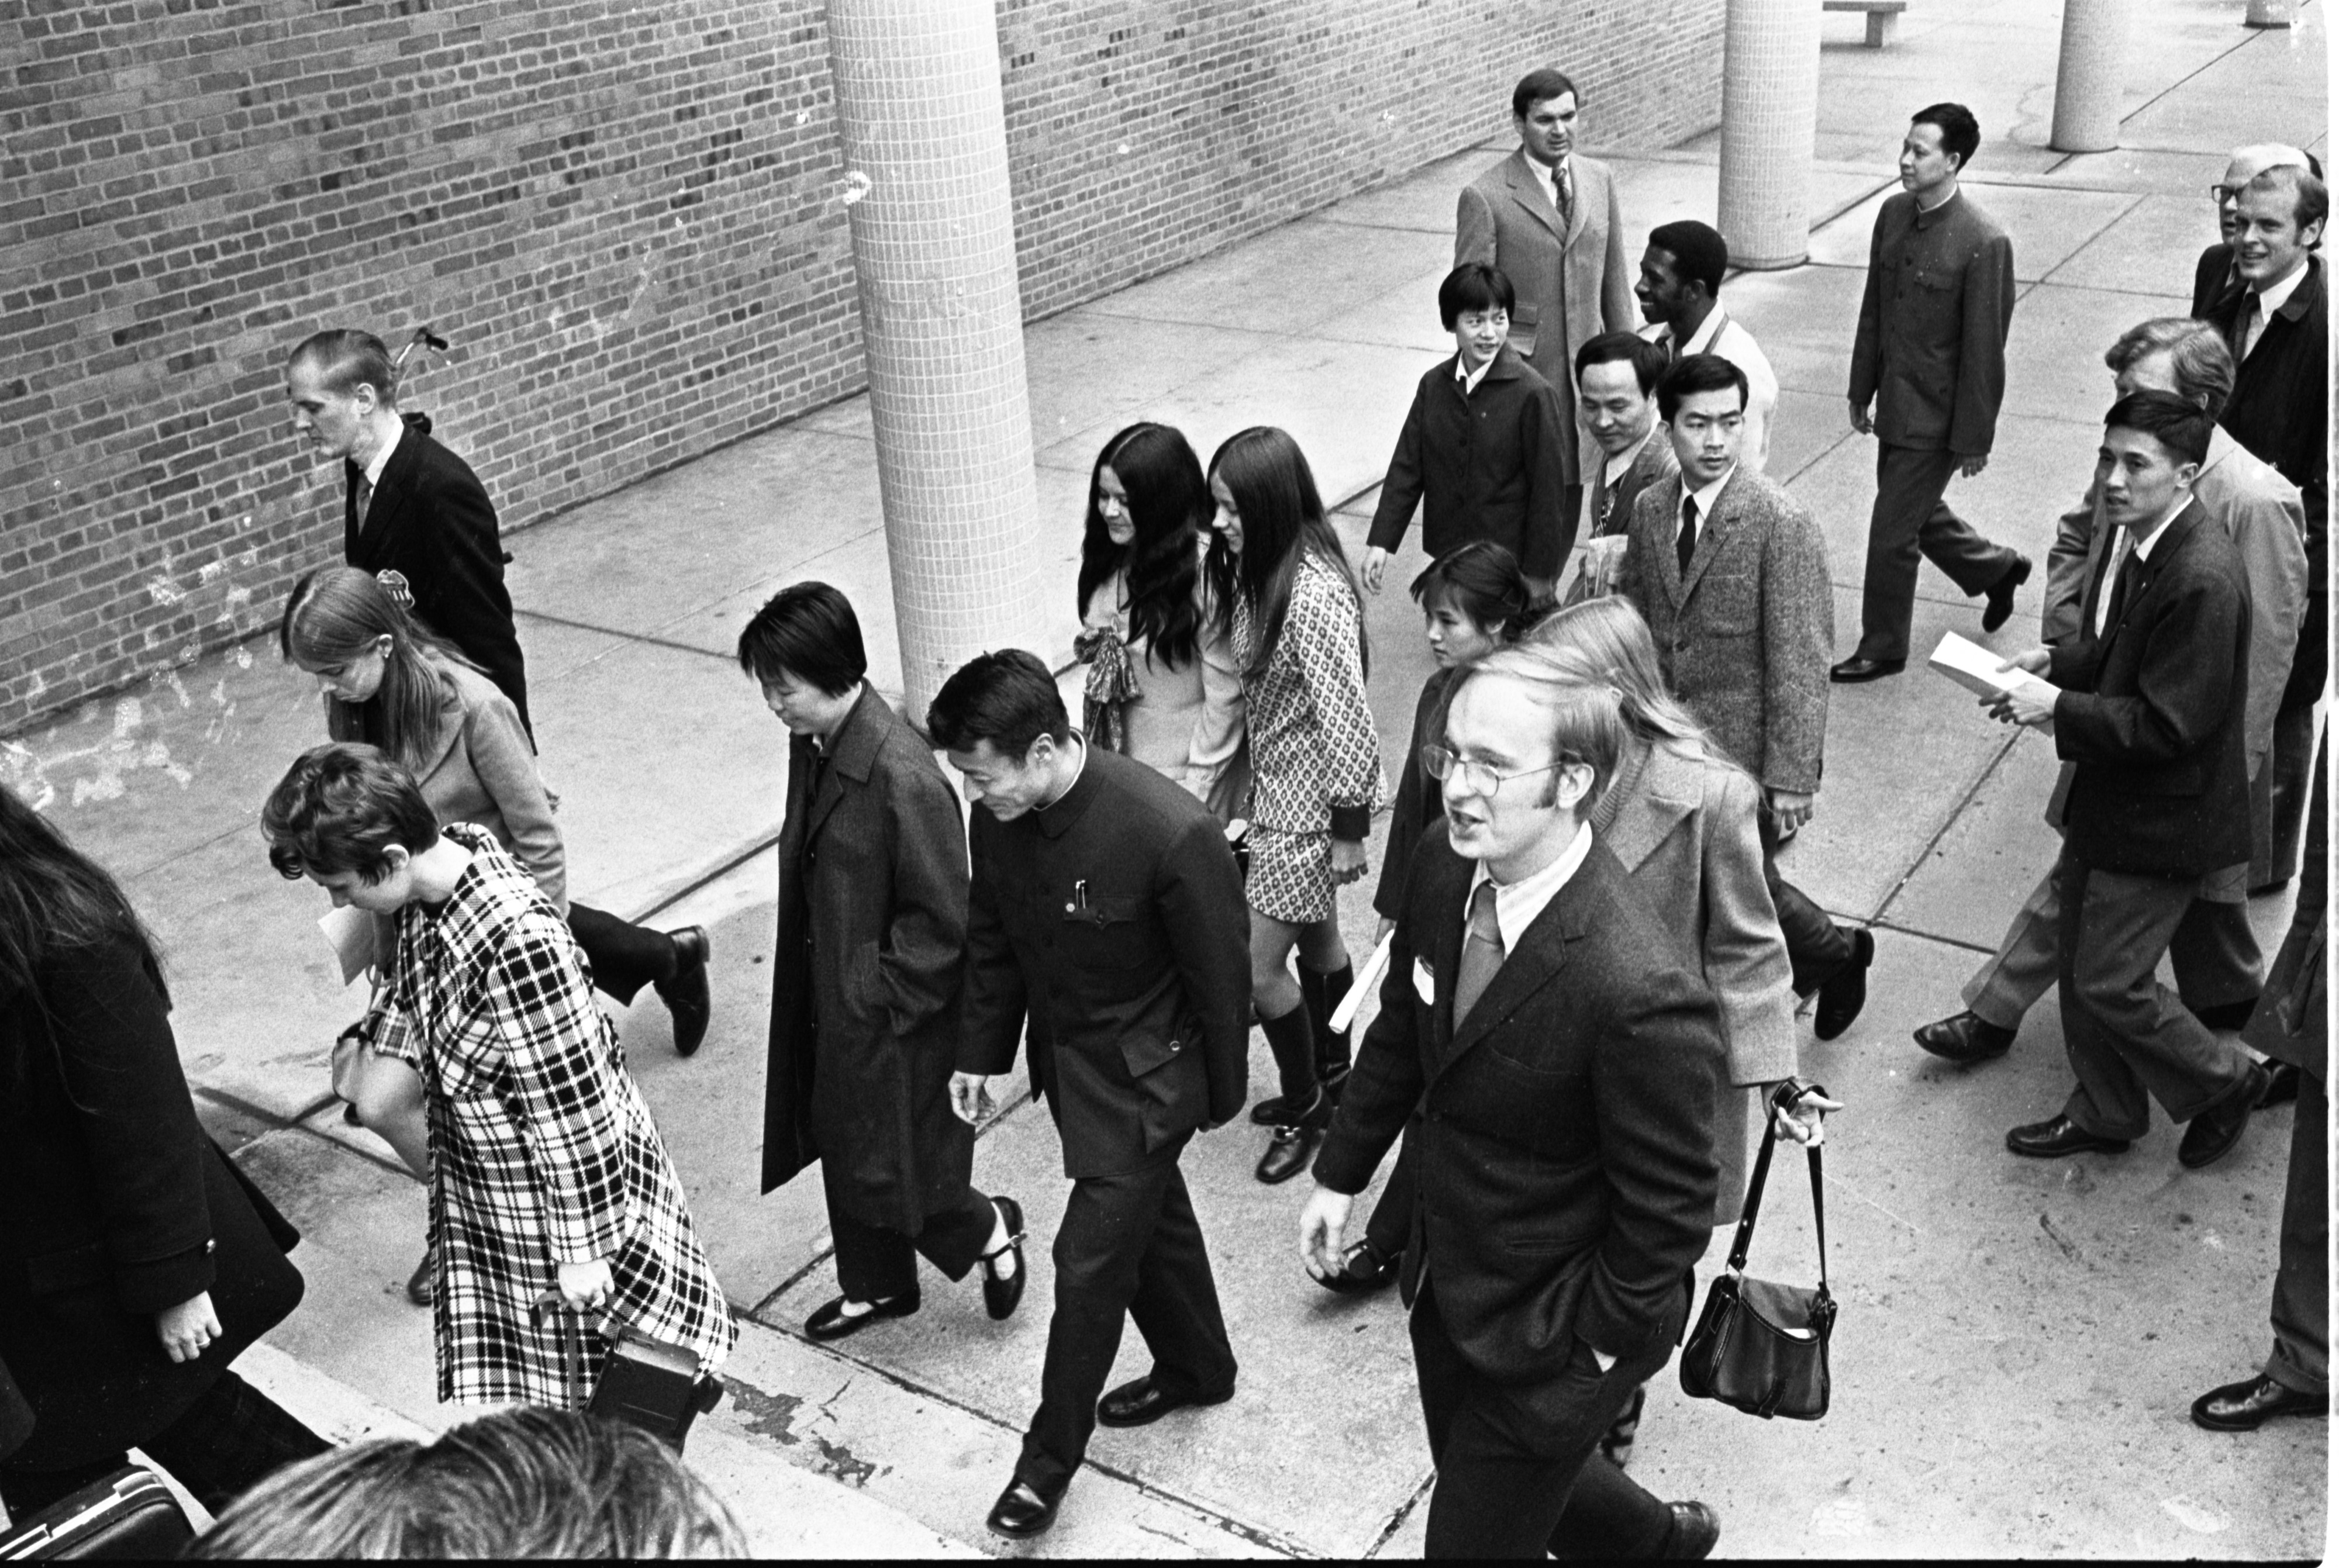 Chinese Ping-Pong Players Are Escorted Around Campus, April 1972 image